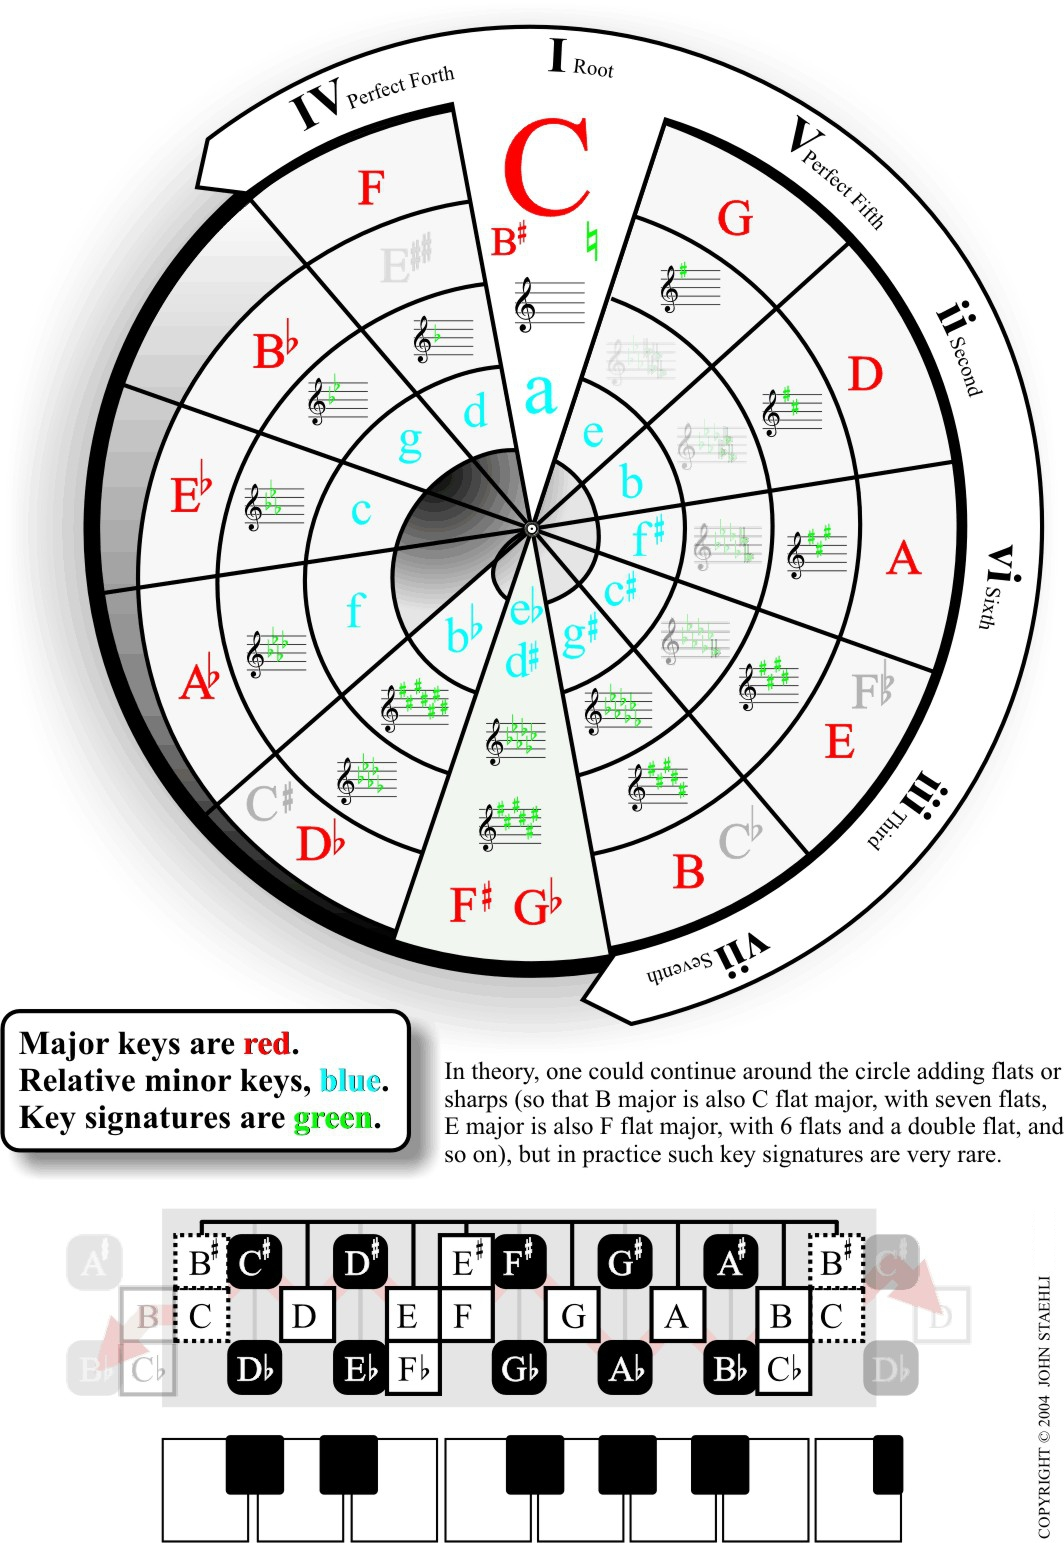 Circle Of Fifths Guitar Explained : www.galleryhip.com - The Hippest Pics